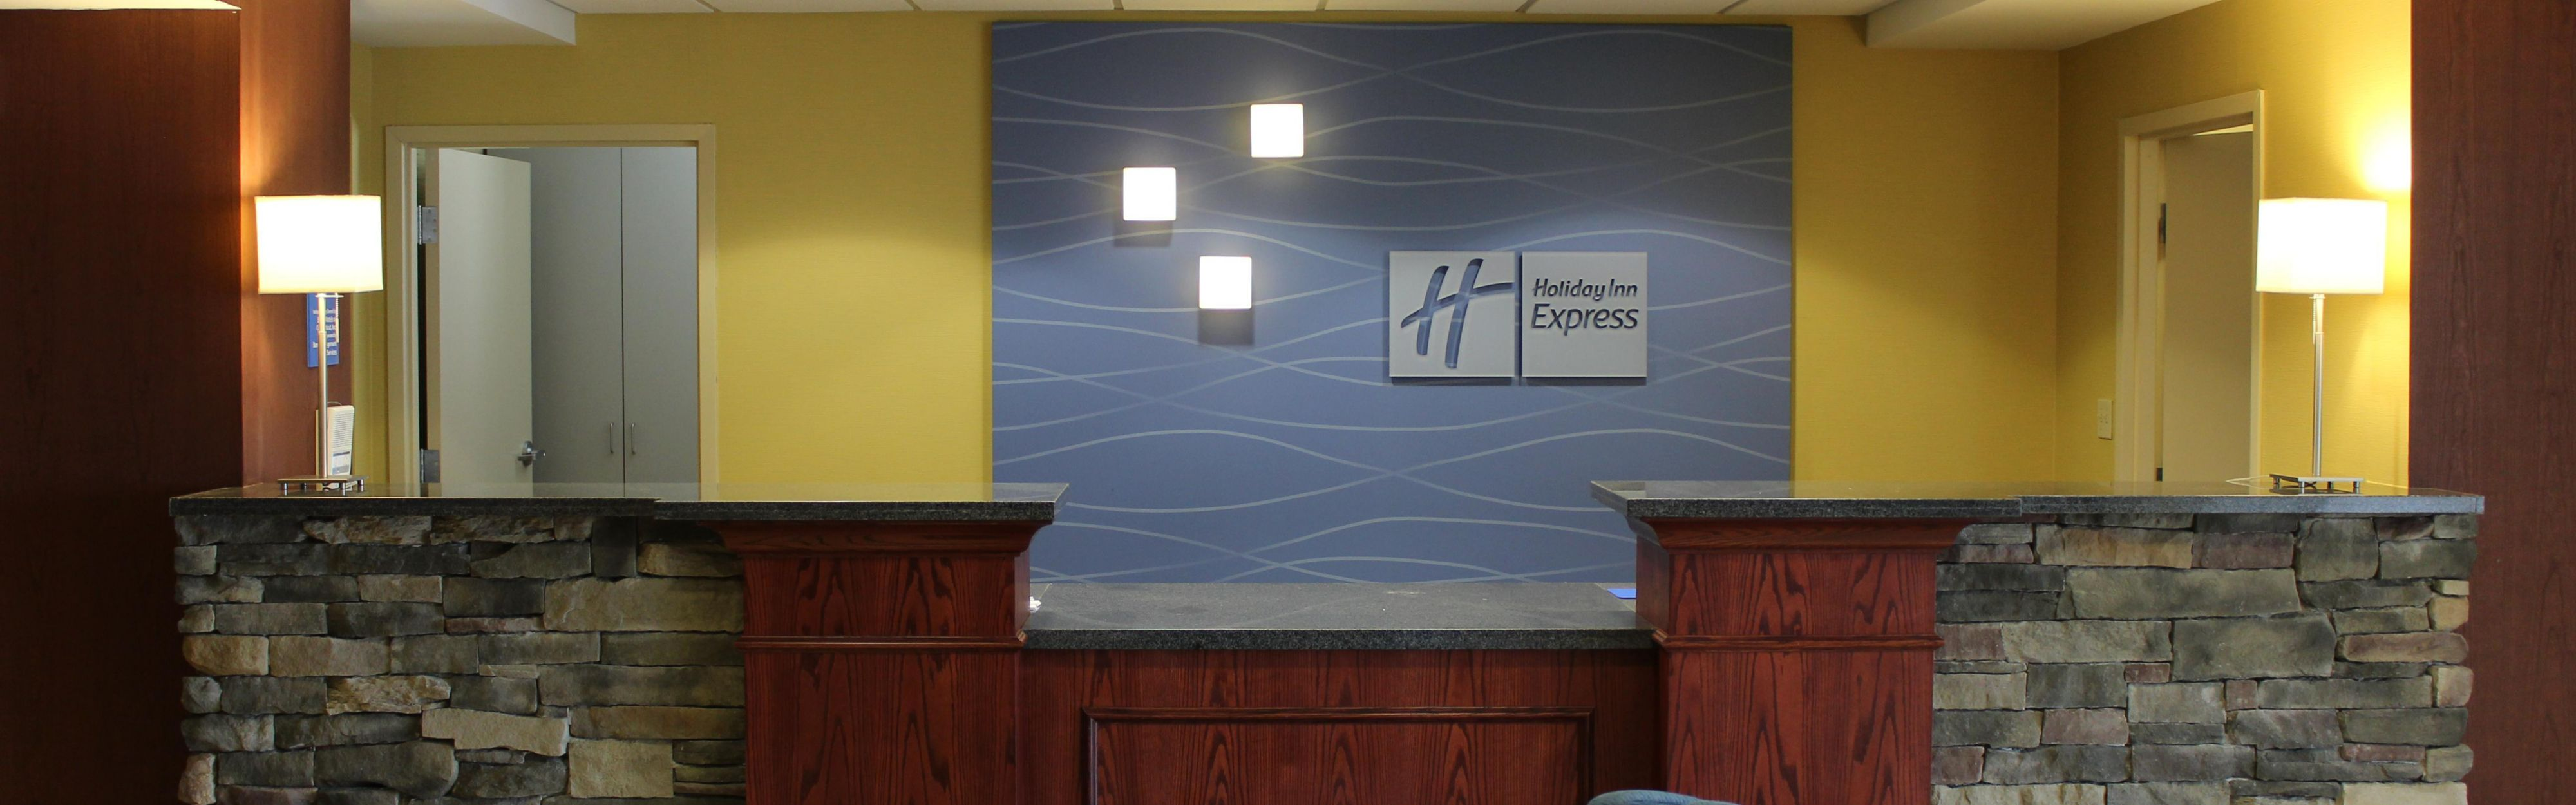 Holiday Inn Express & Suites Milford image 0